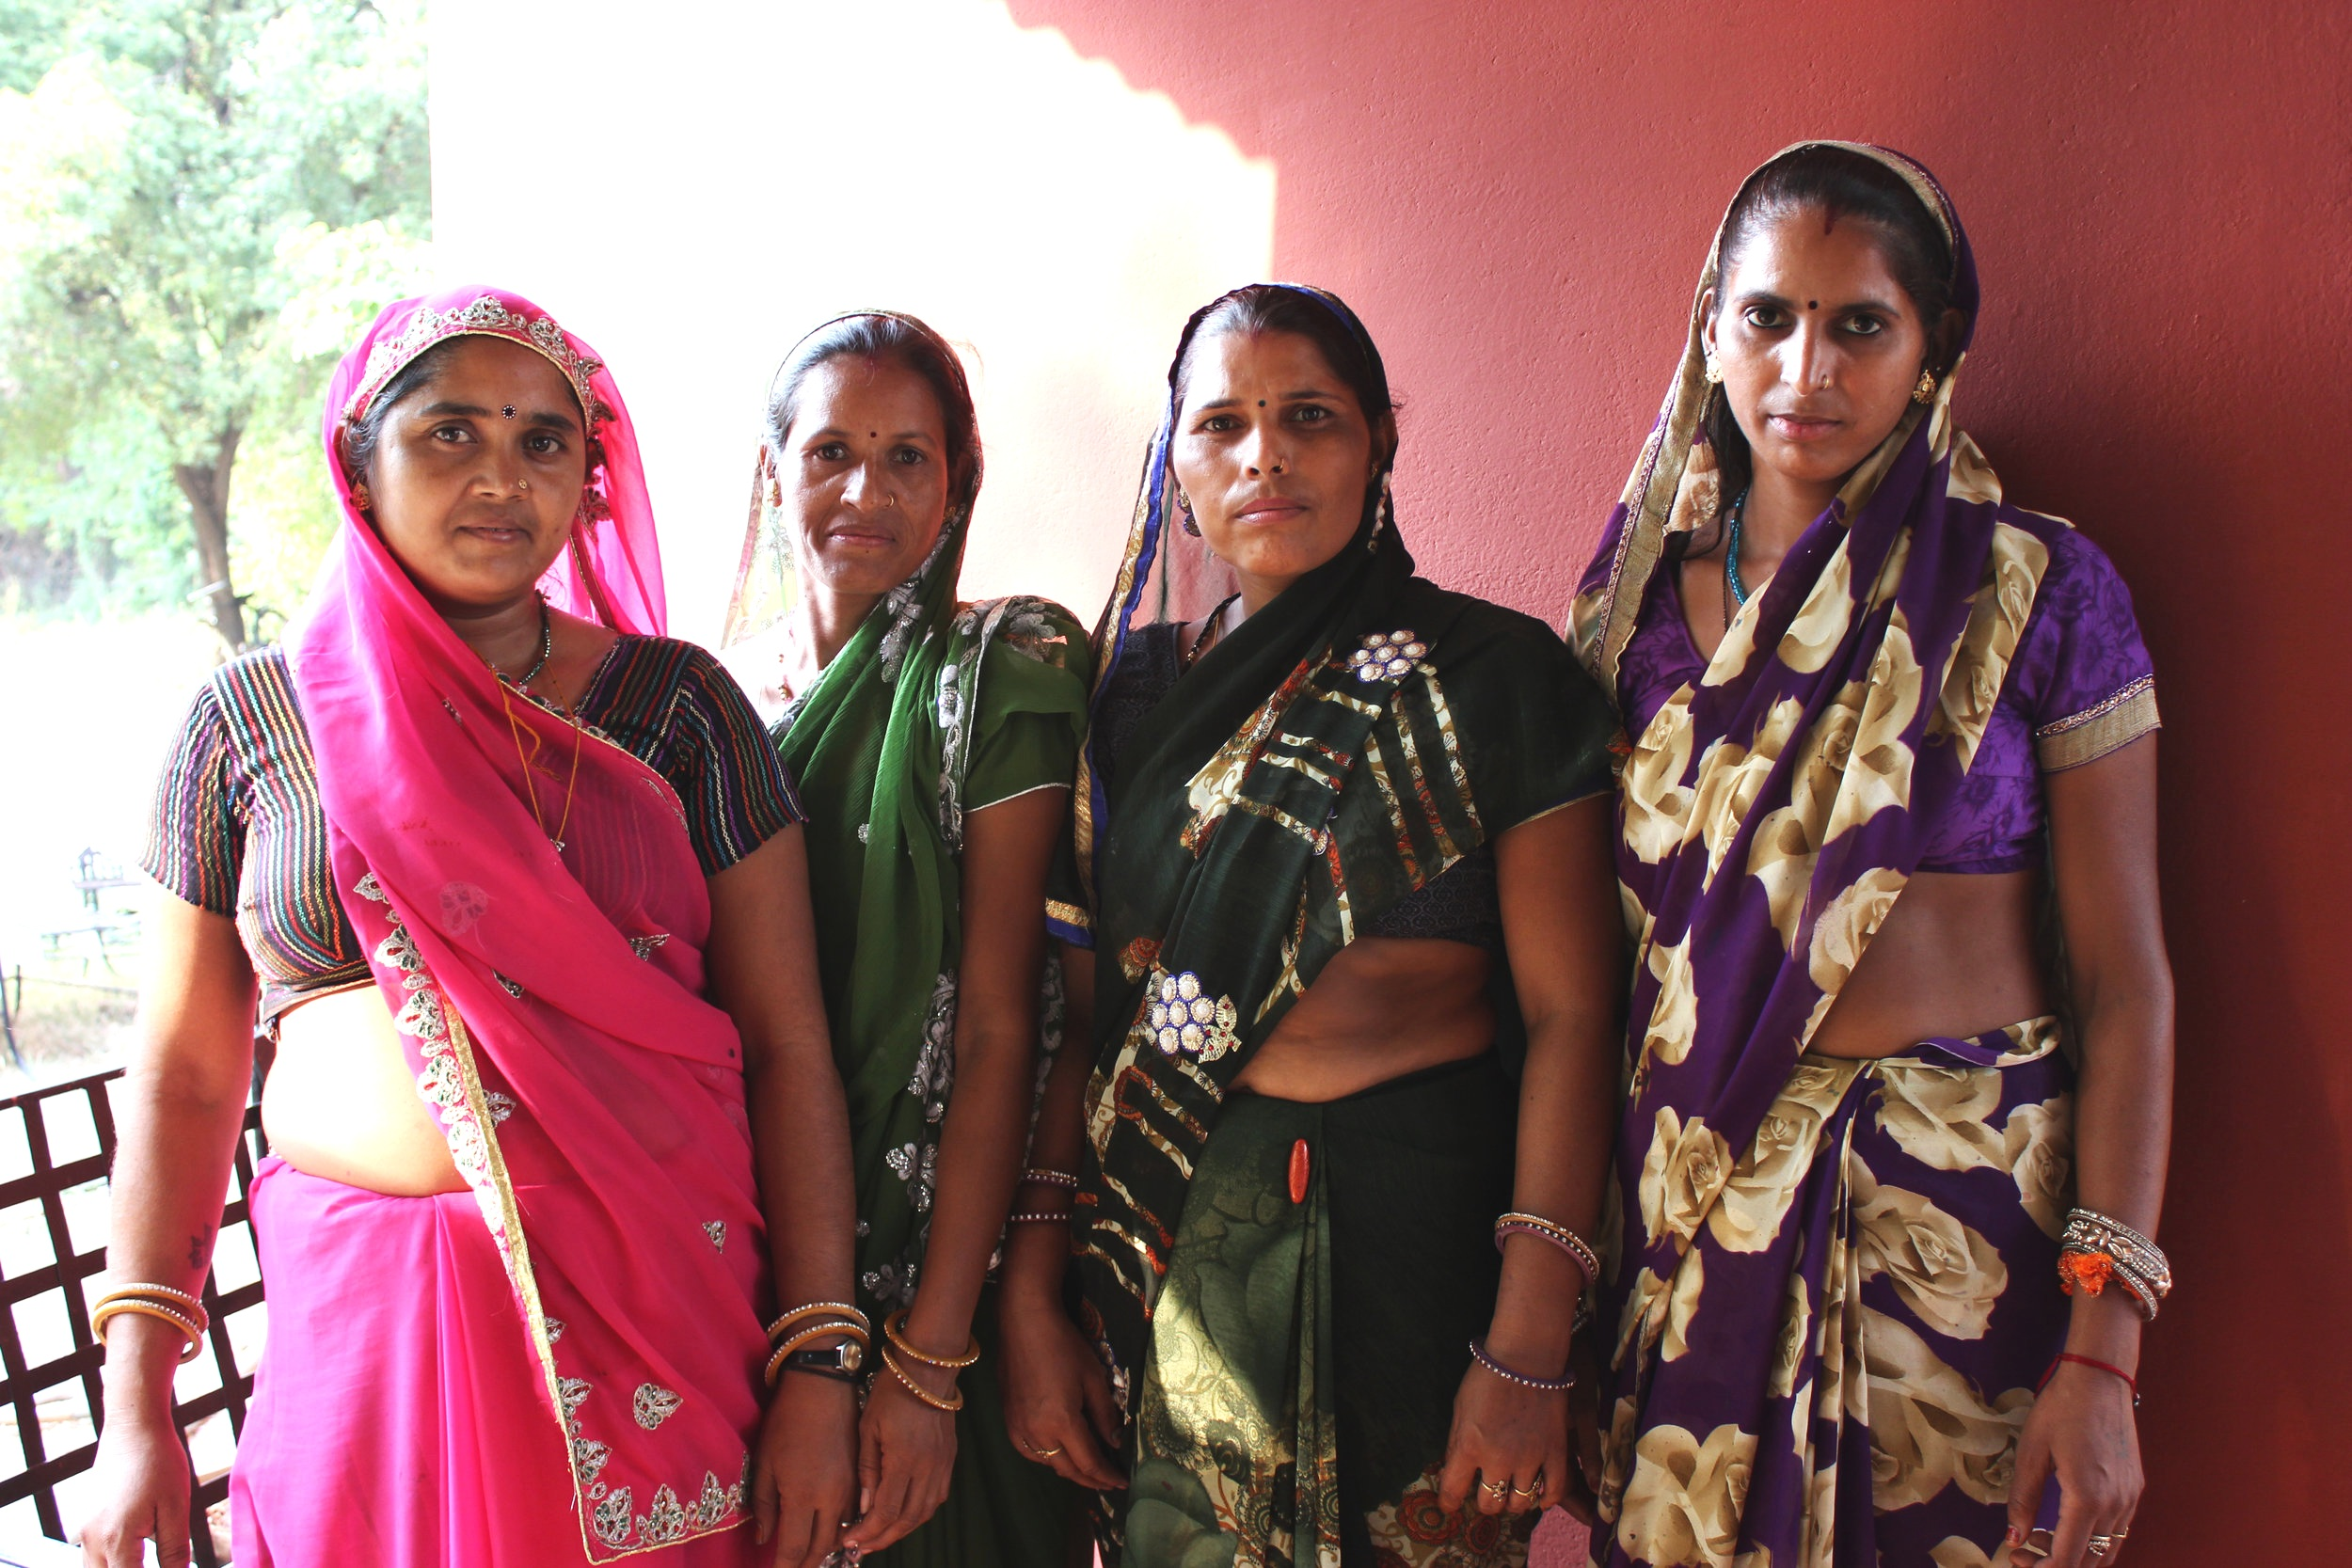 Other hand block printers we met at DHONK. From left to right: Sushila, Usha, Mamta, and Raji.